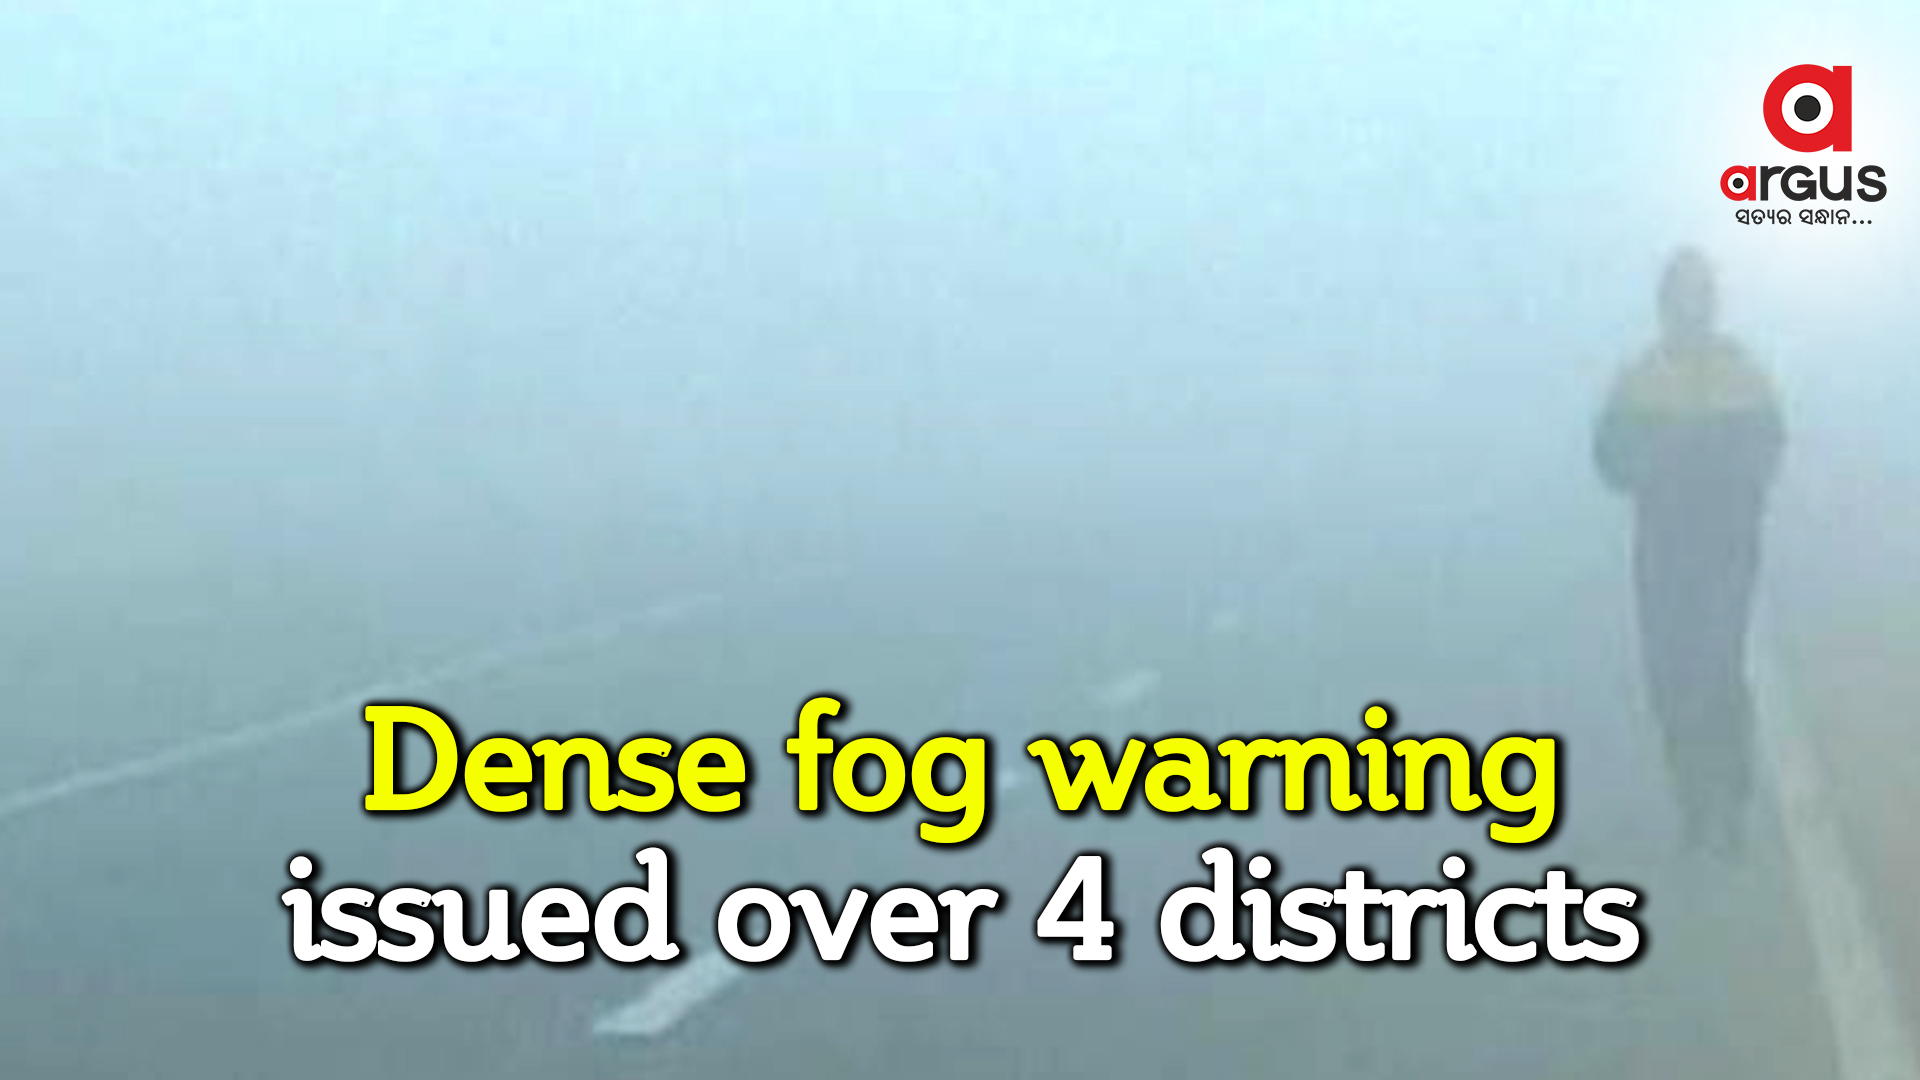 Yellow warning of dense fog issued over 4 districts in Odisha